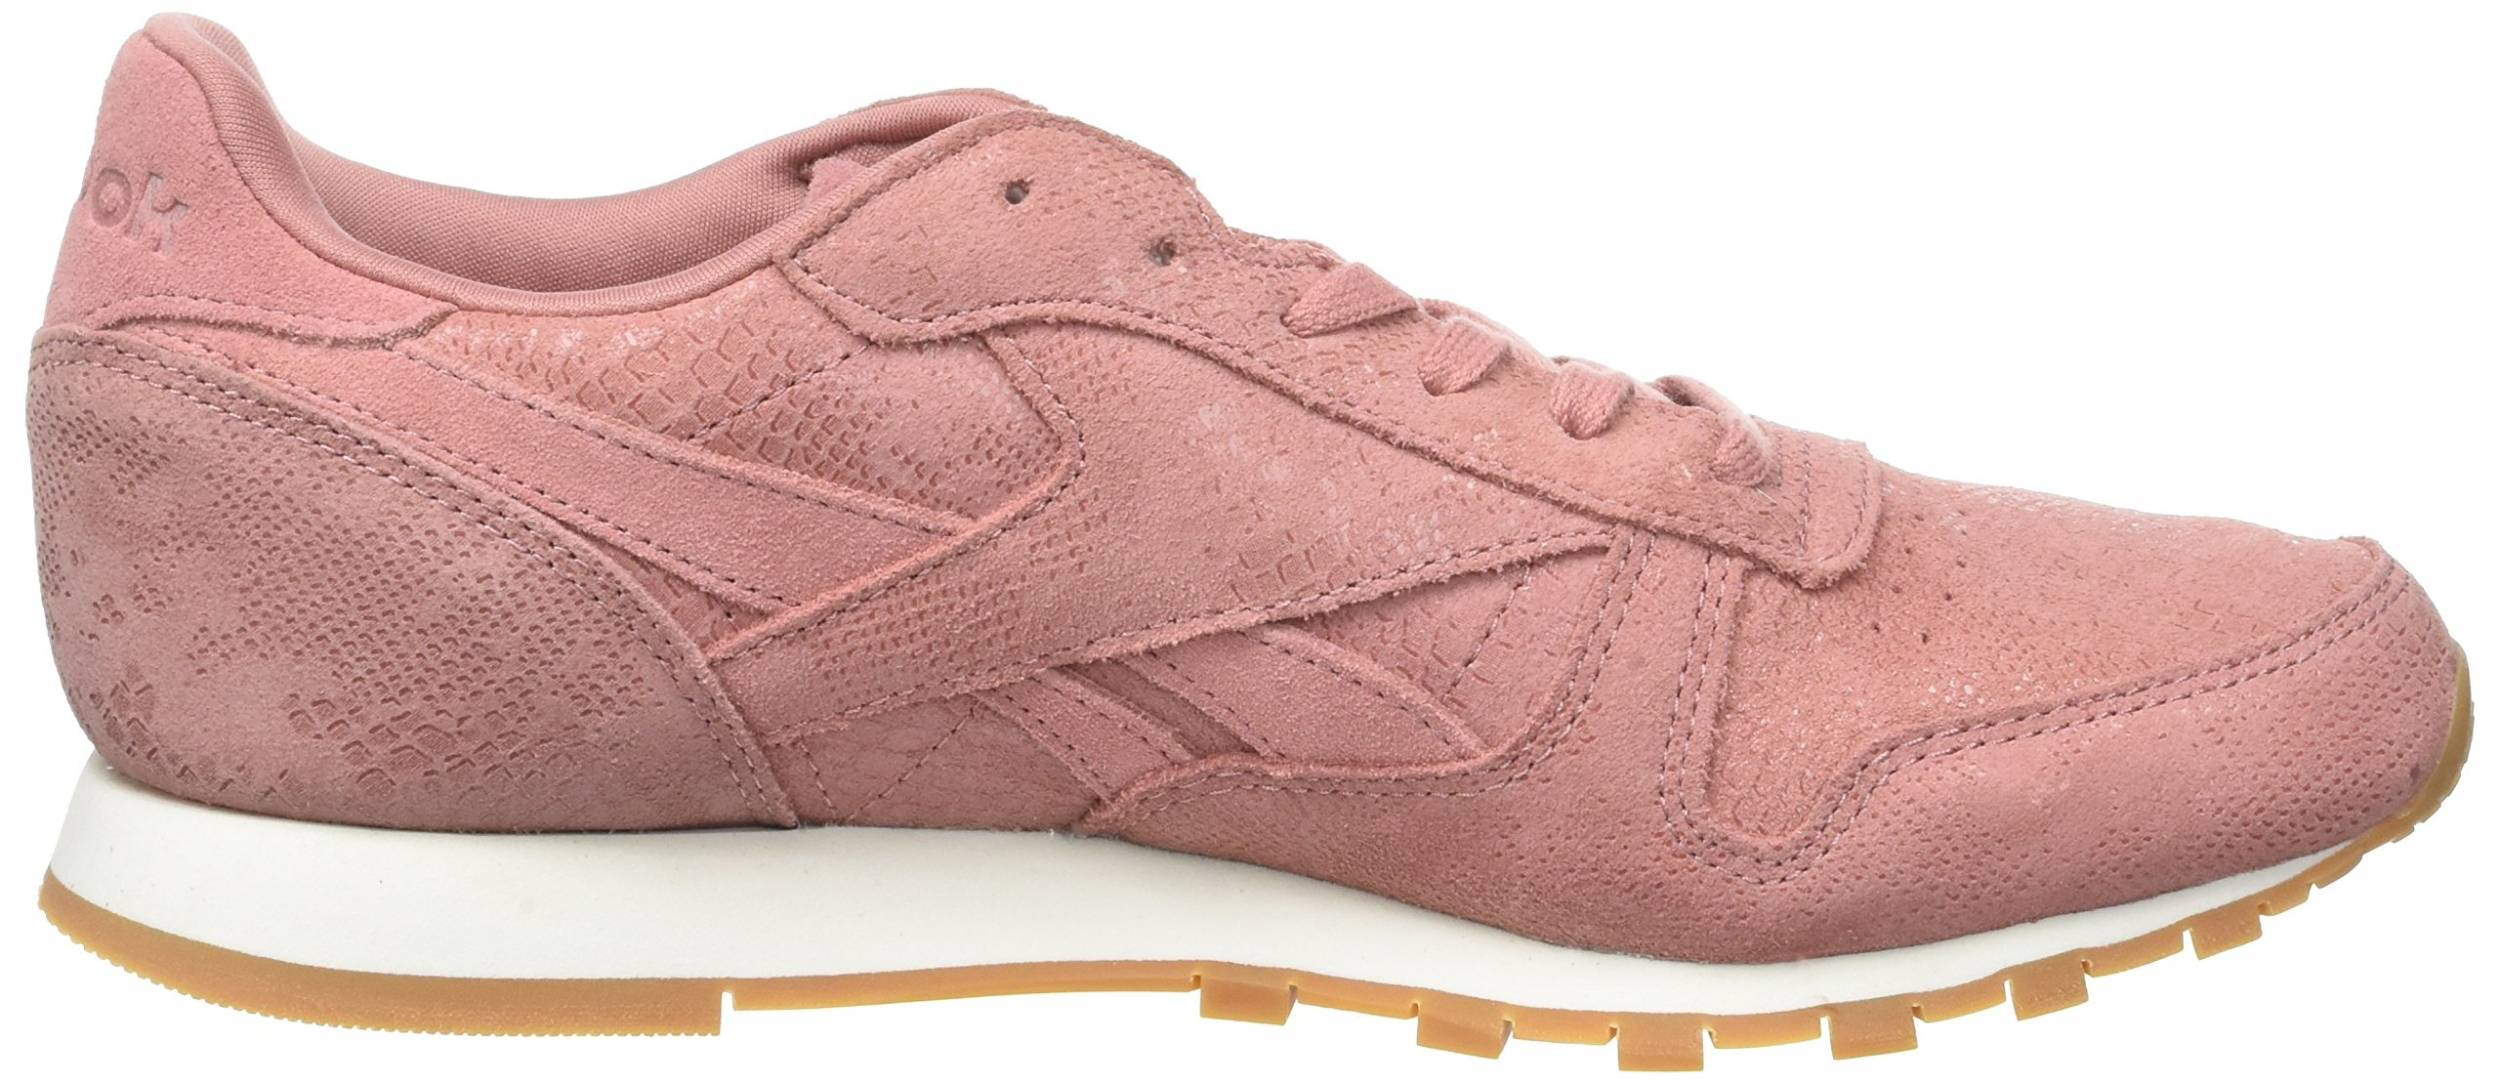 diario tubo Oficiales  13 Reasons to/NOT to Buy Reebok Classic Leather Clean Exotics (Jan 2021) |  RunRepeat